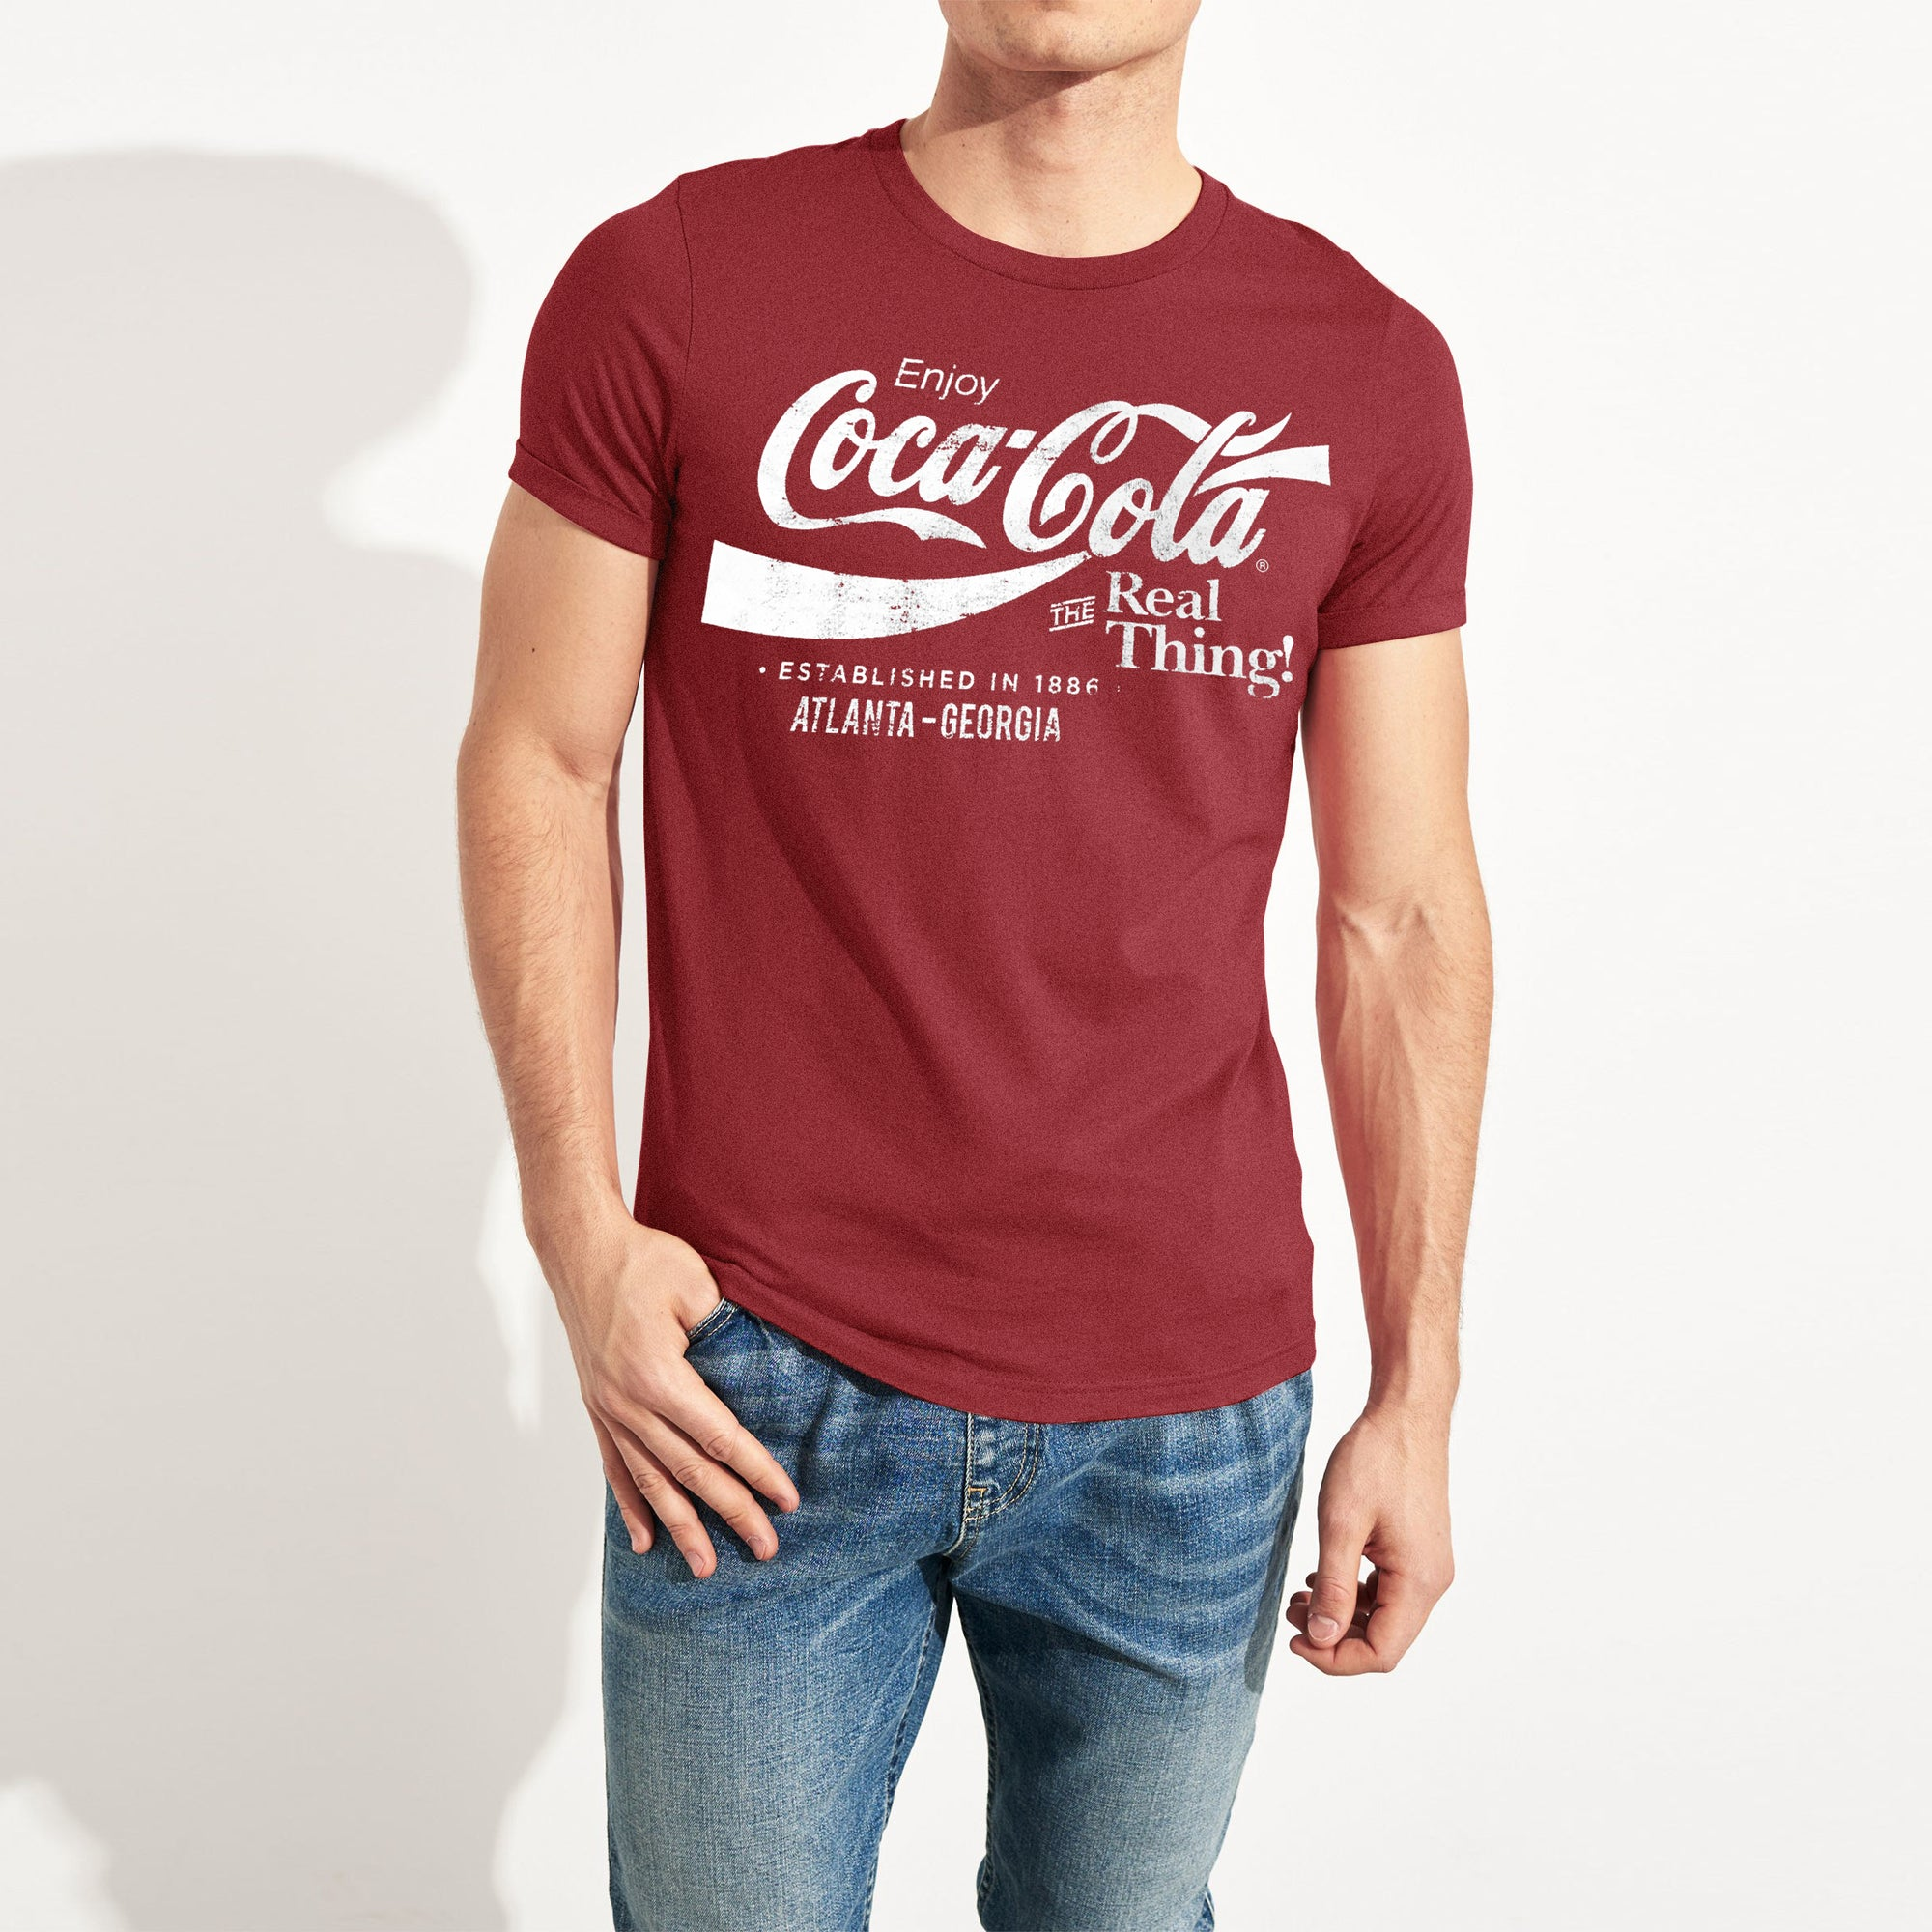 brandsego - Coca-cola Crew Neck Single Jersey Half Sleeve Tee Shirt For Men-Carrot Red-NA8428